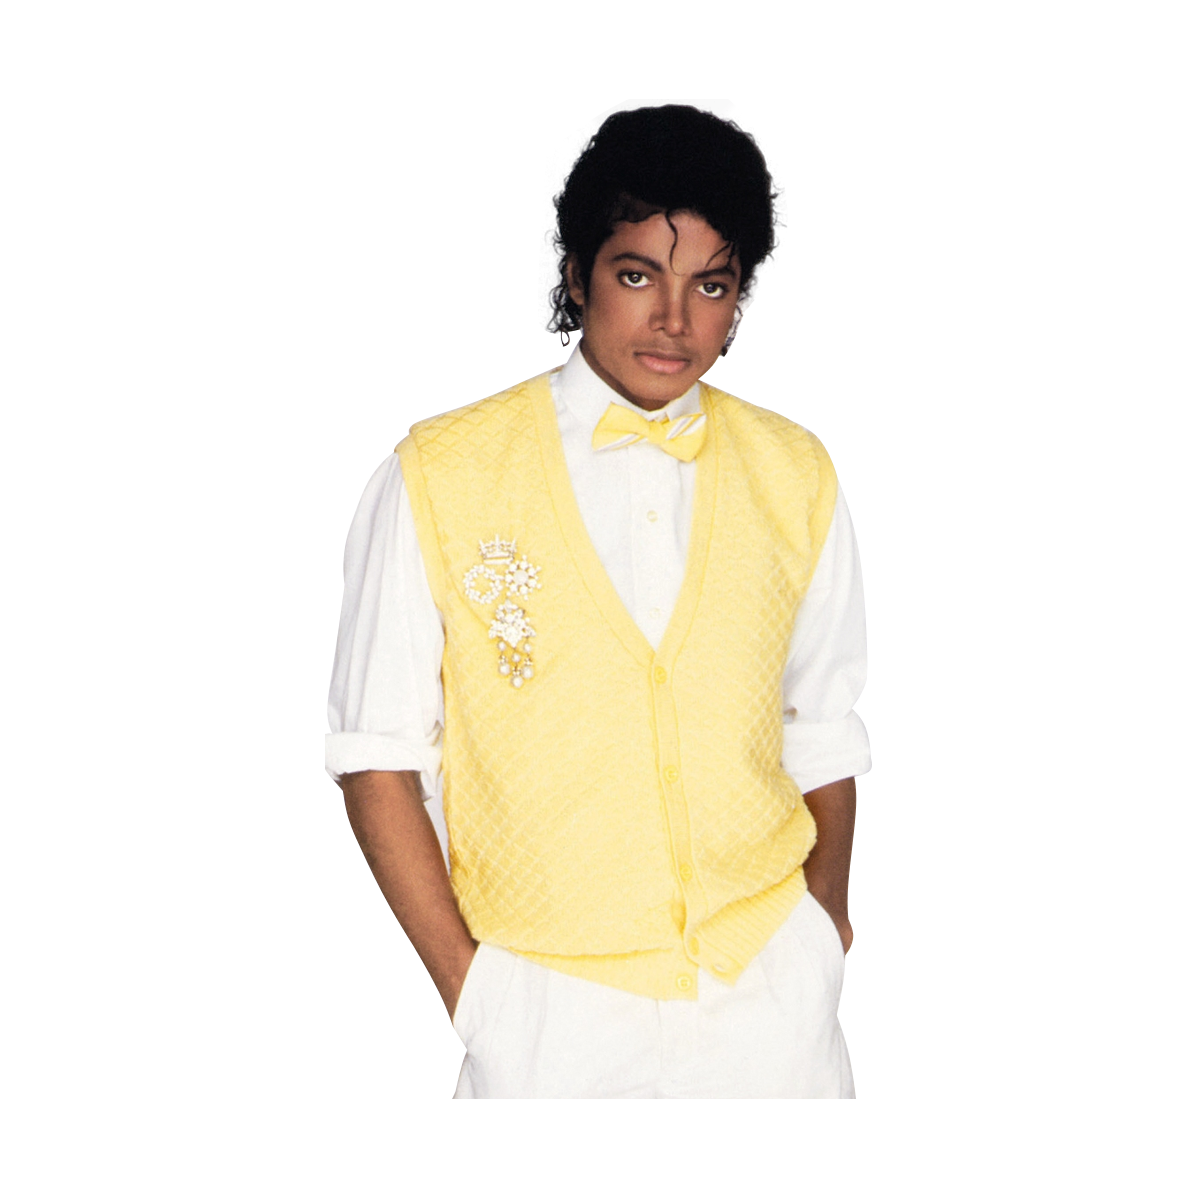 michael jackson png images for download crazypngm crazy png images download #28842